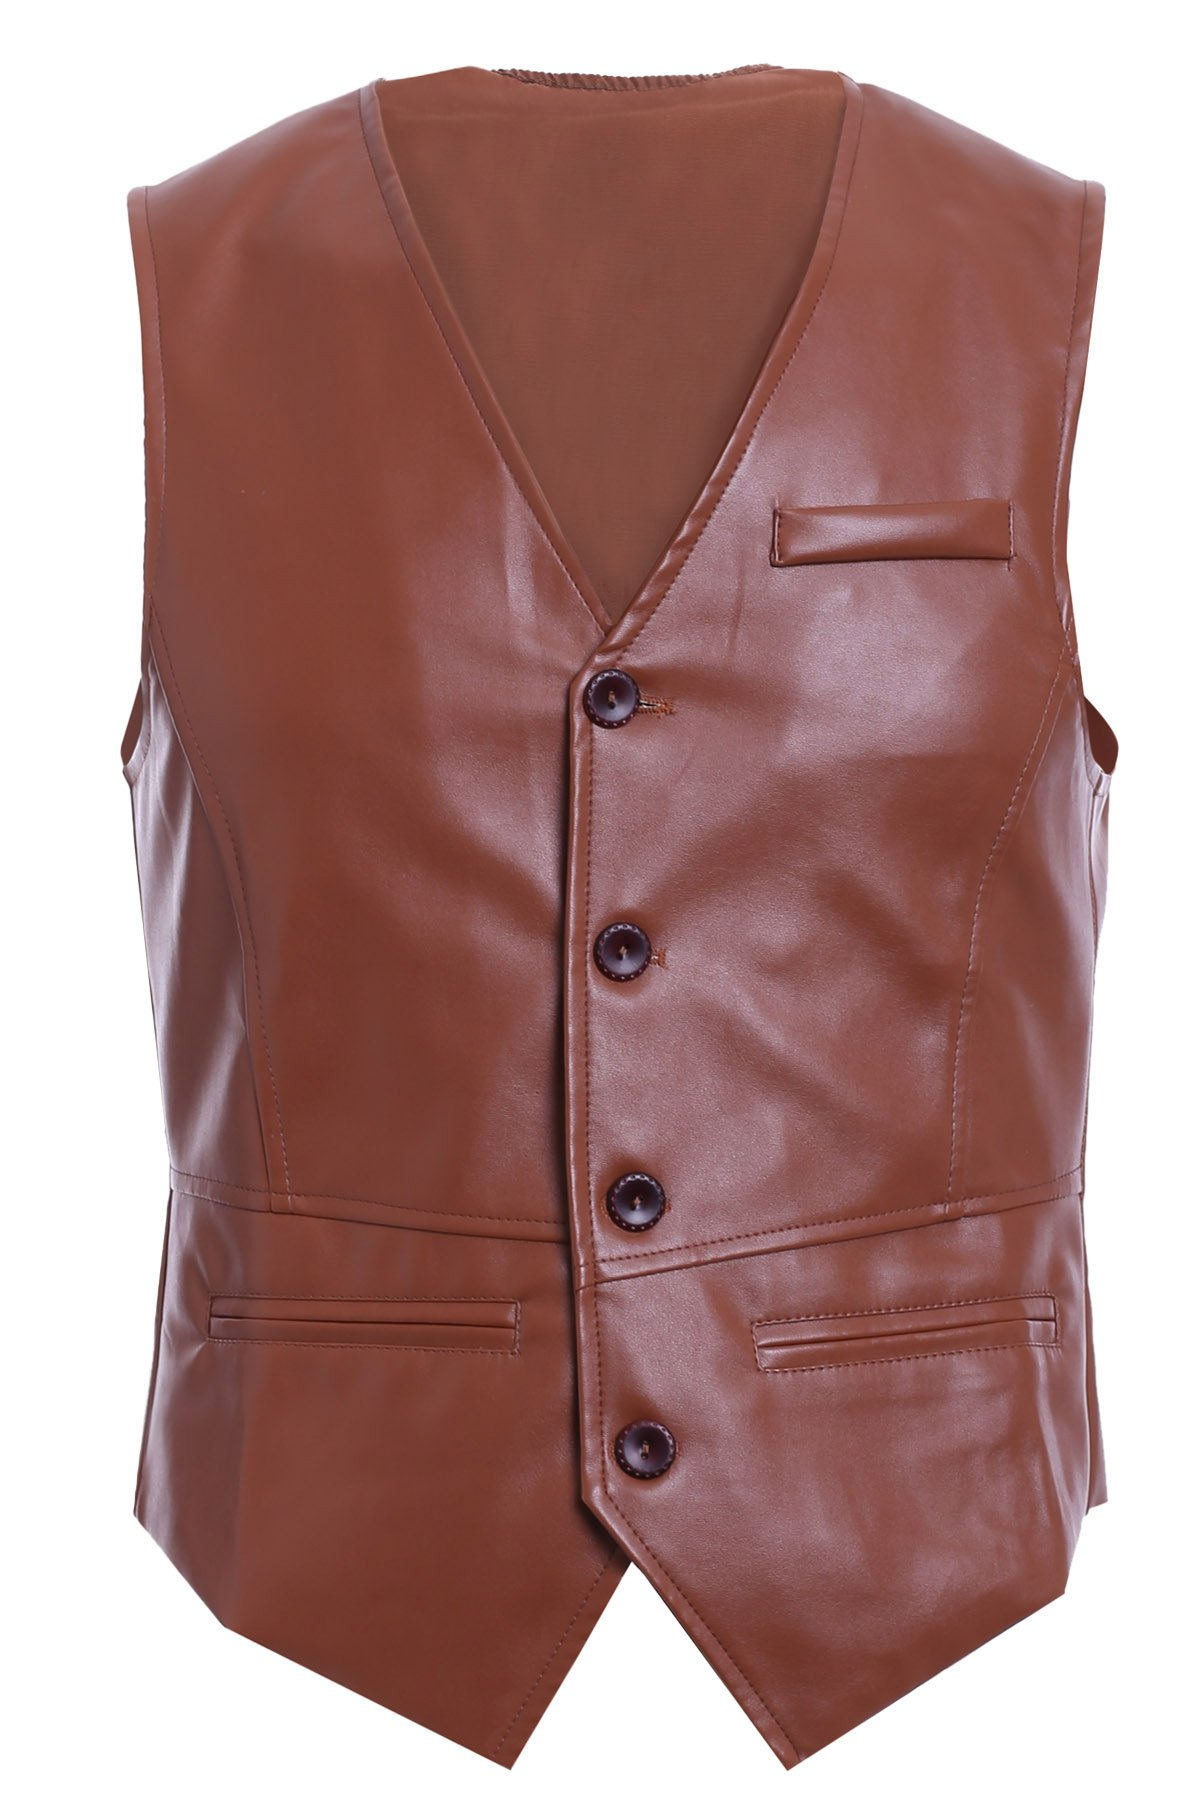 Solid Color Single-Breasted V-Neck Men's PU Leather Waistcoat